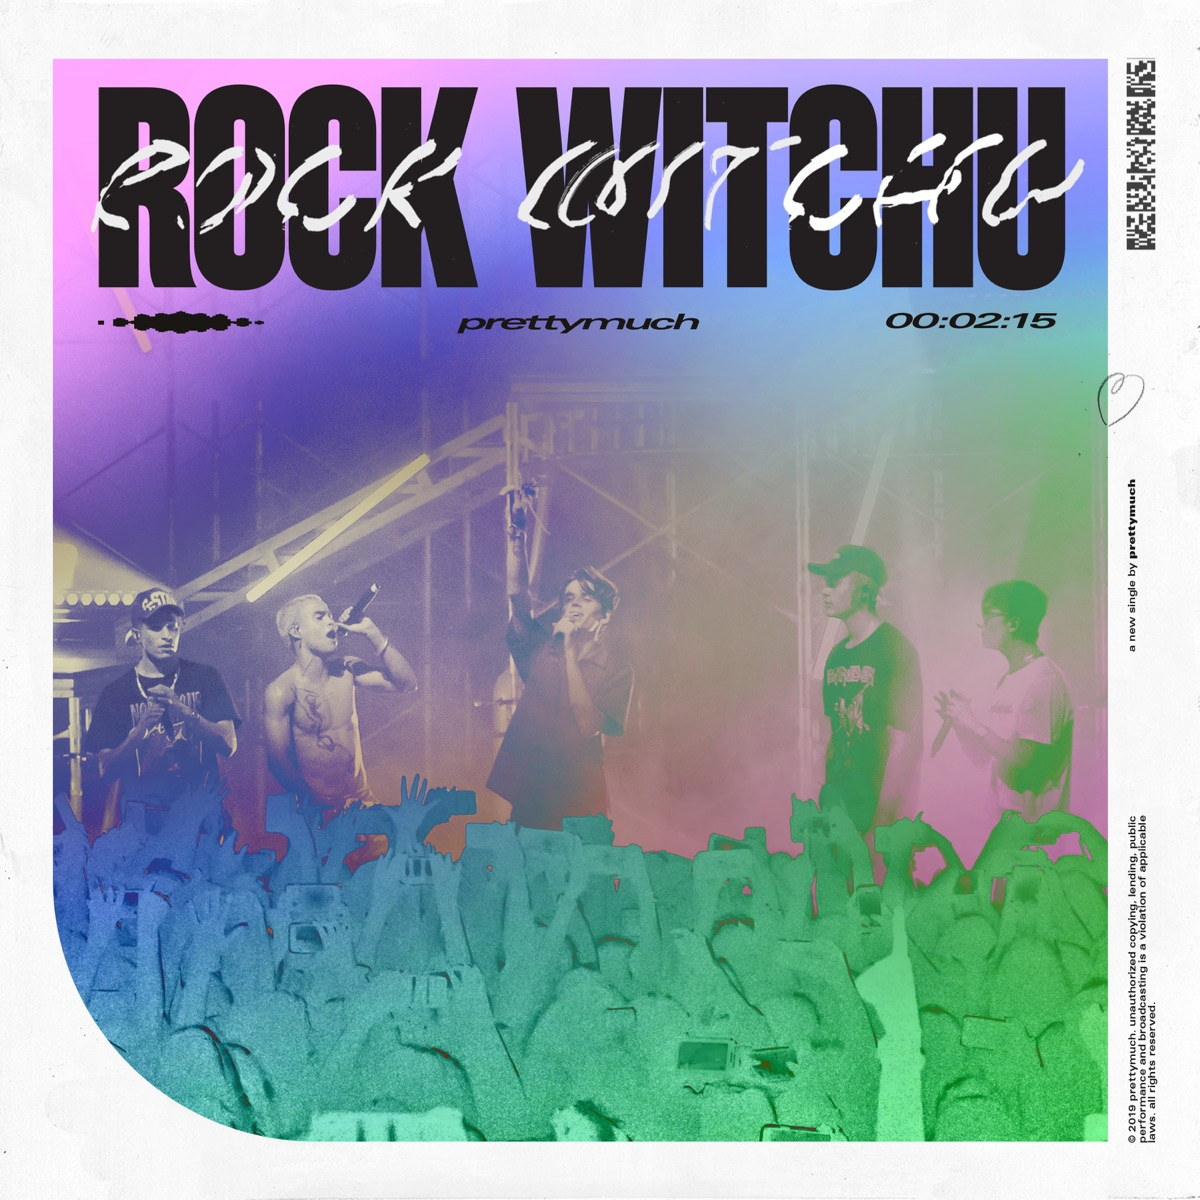 Rock Witchu - Single Album Cover by PRETTYMUCH